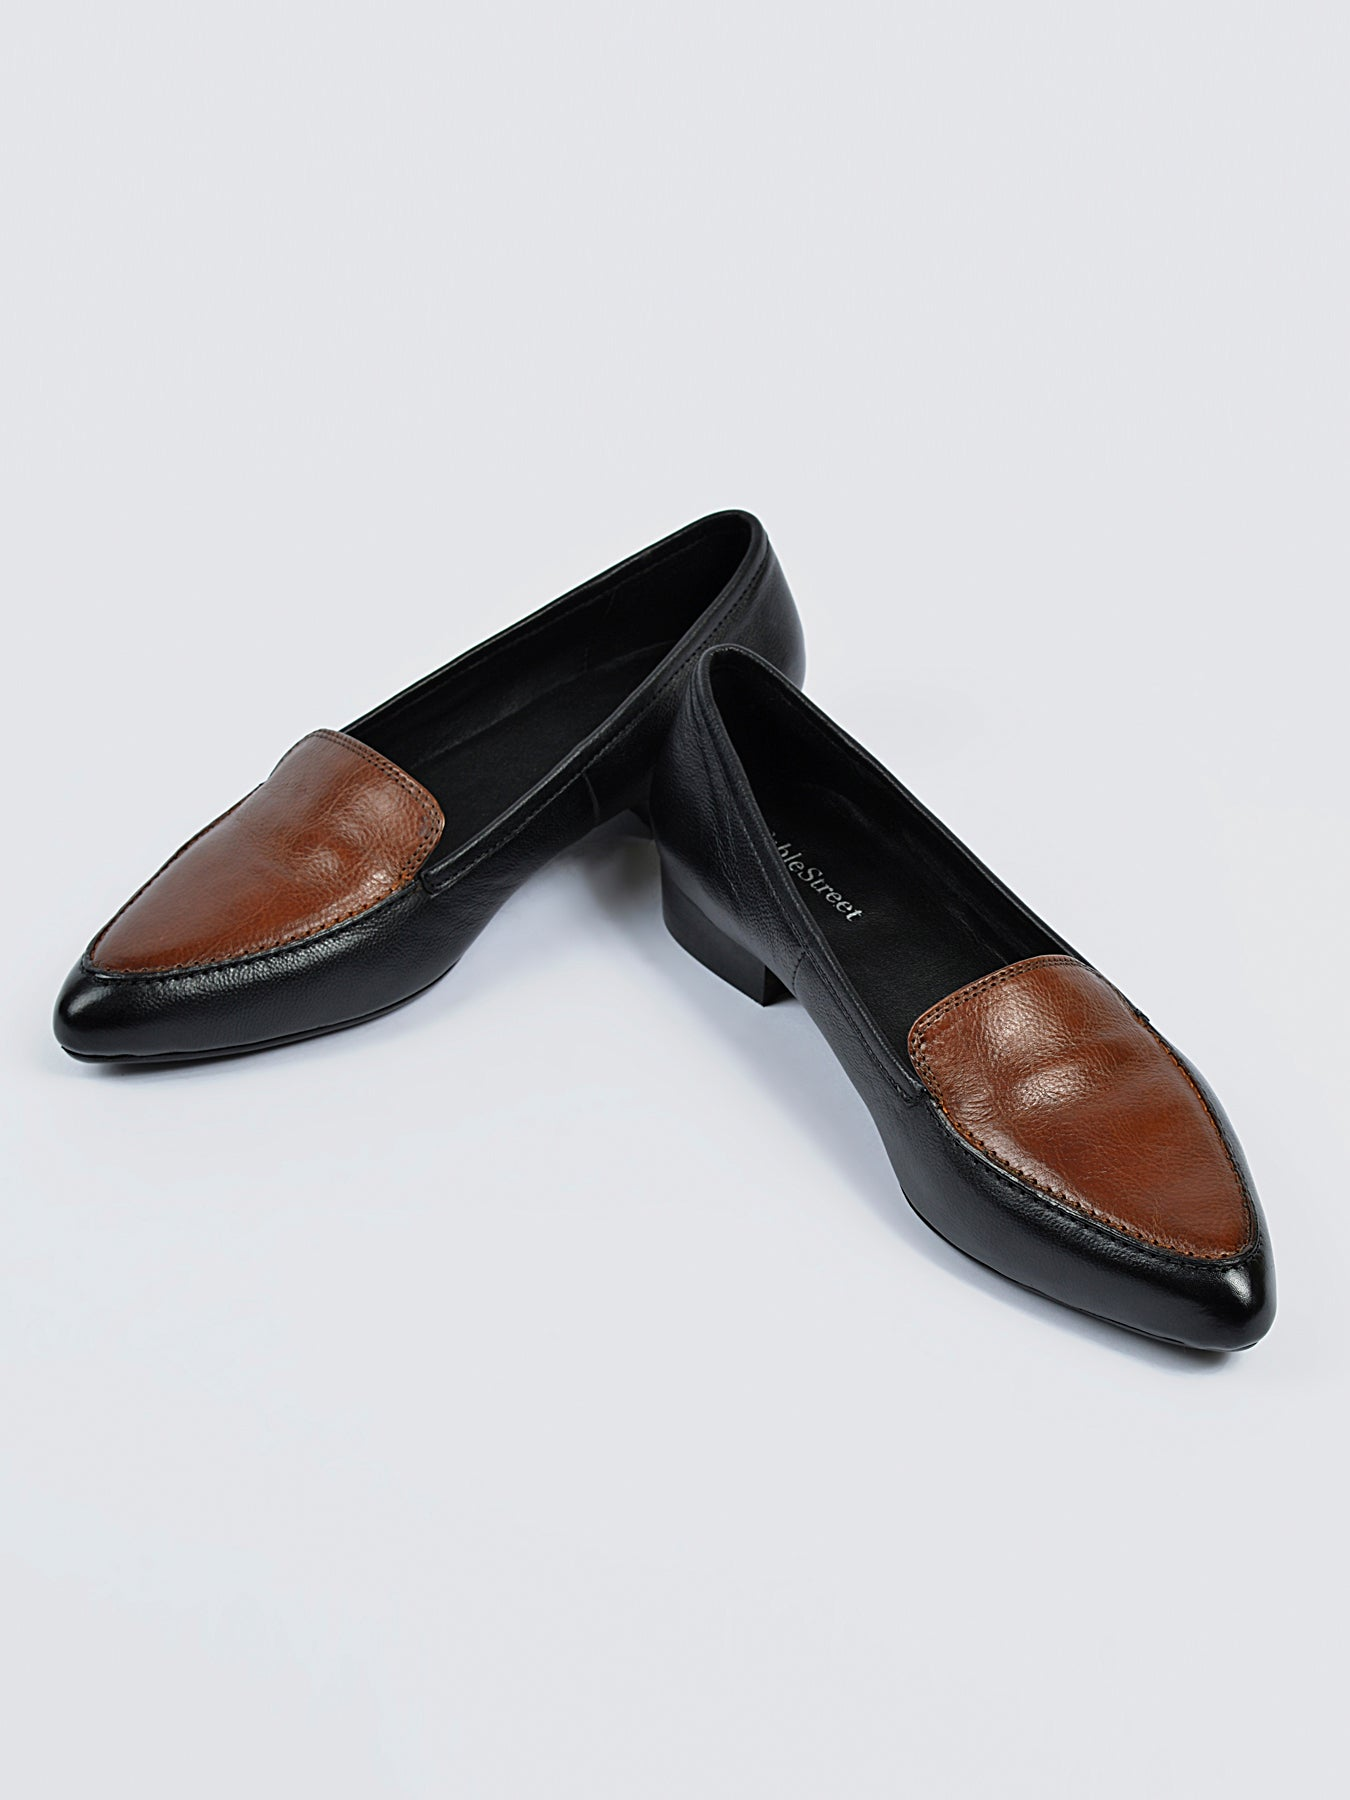 Pointed Toe Leather Loafers - Black and Brown